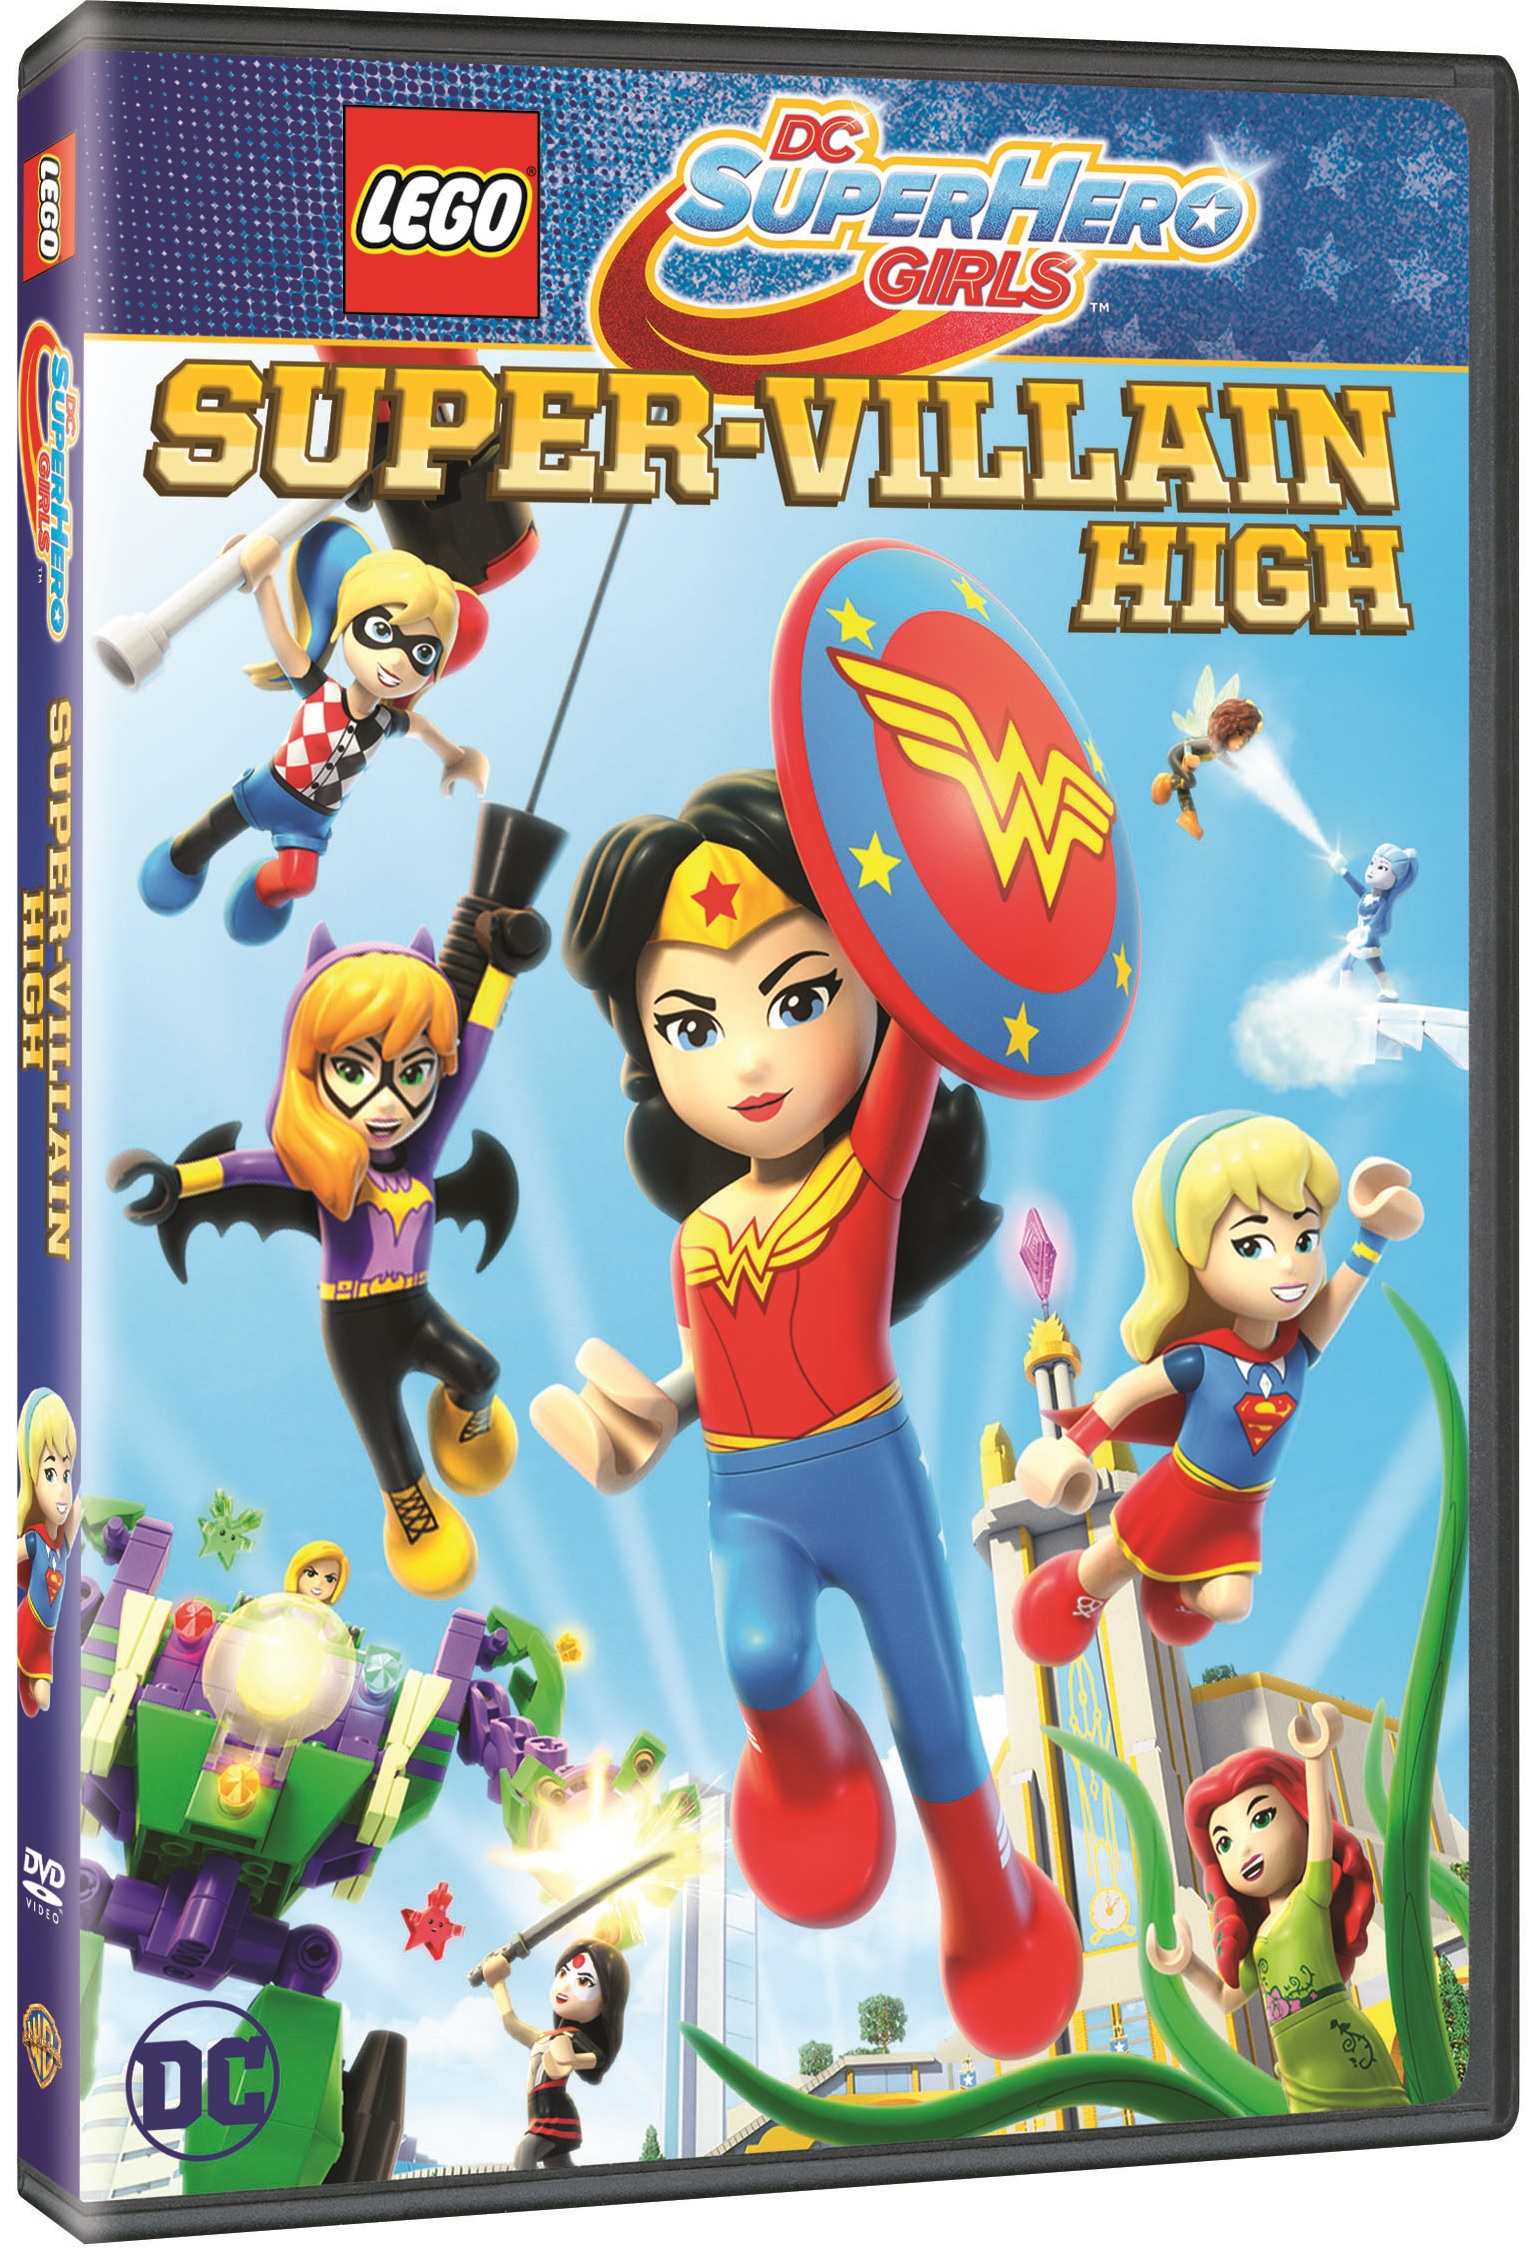 LEGO® DC Super Hero Girls: Super-Villain High  Blu-ray